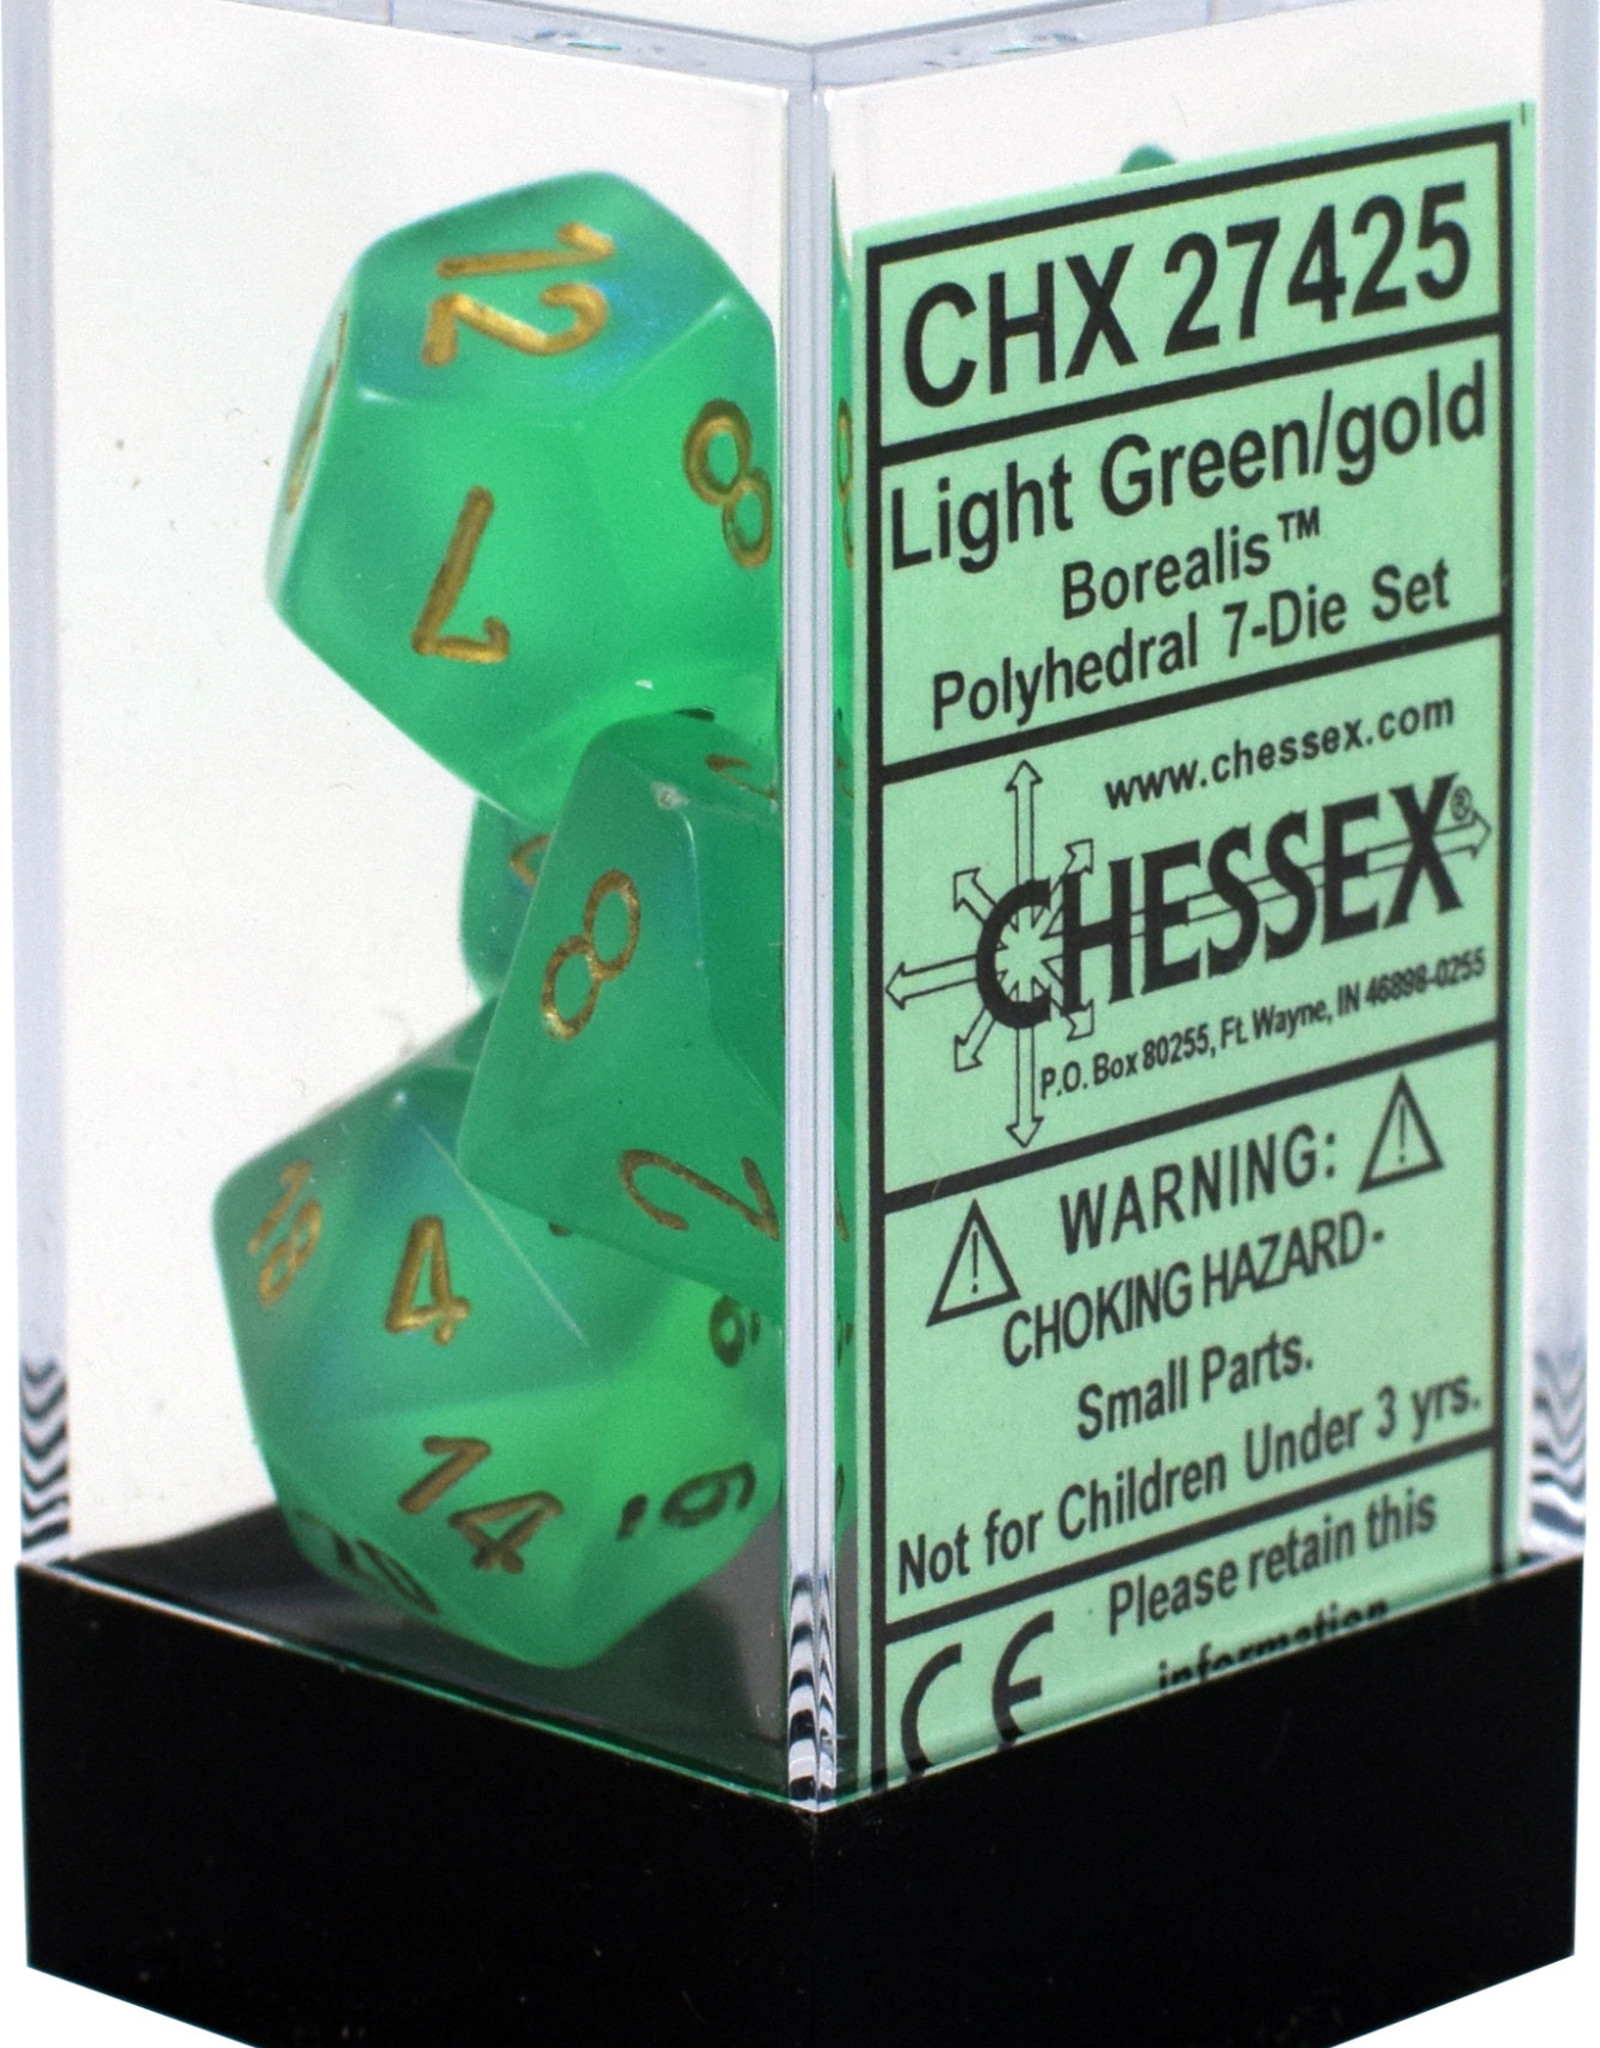 Chessex Borealis Light Green/Gold Polyhedral Set